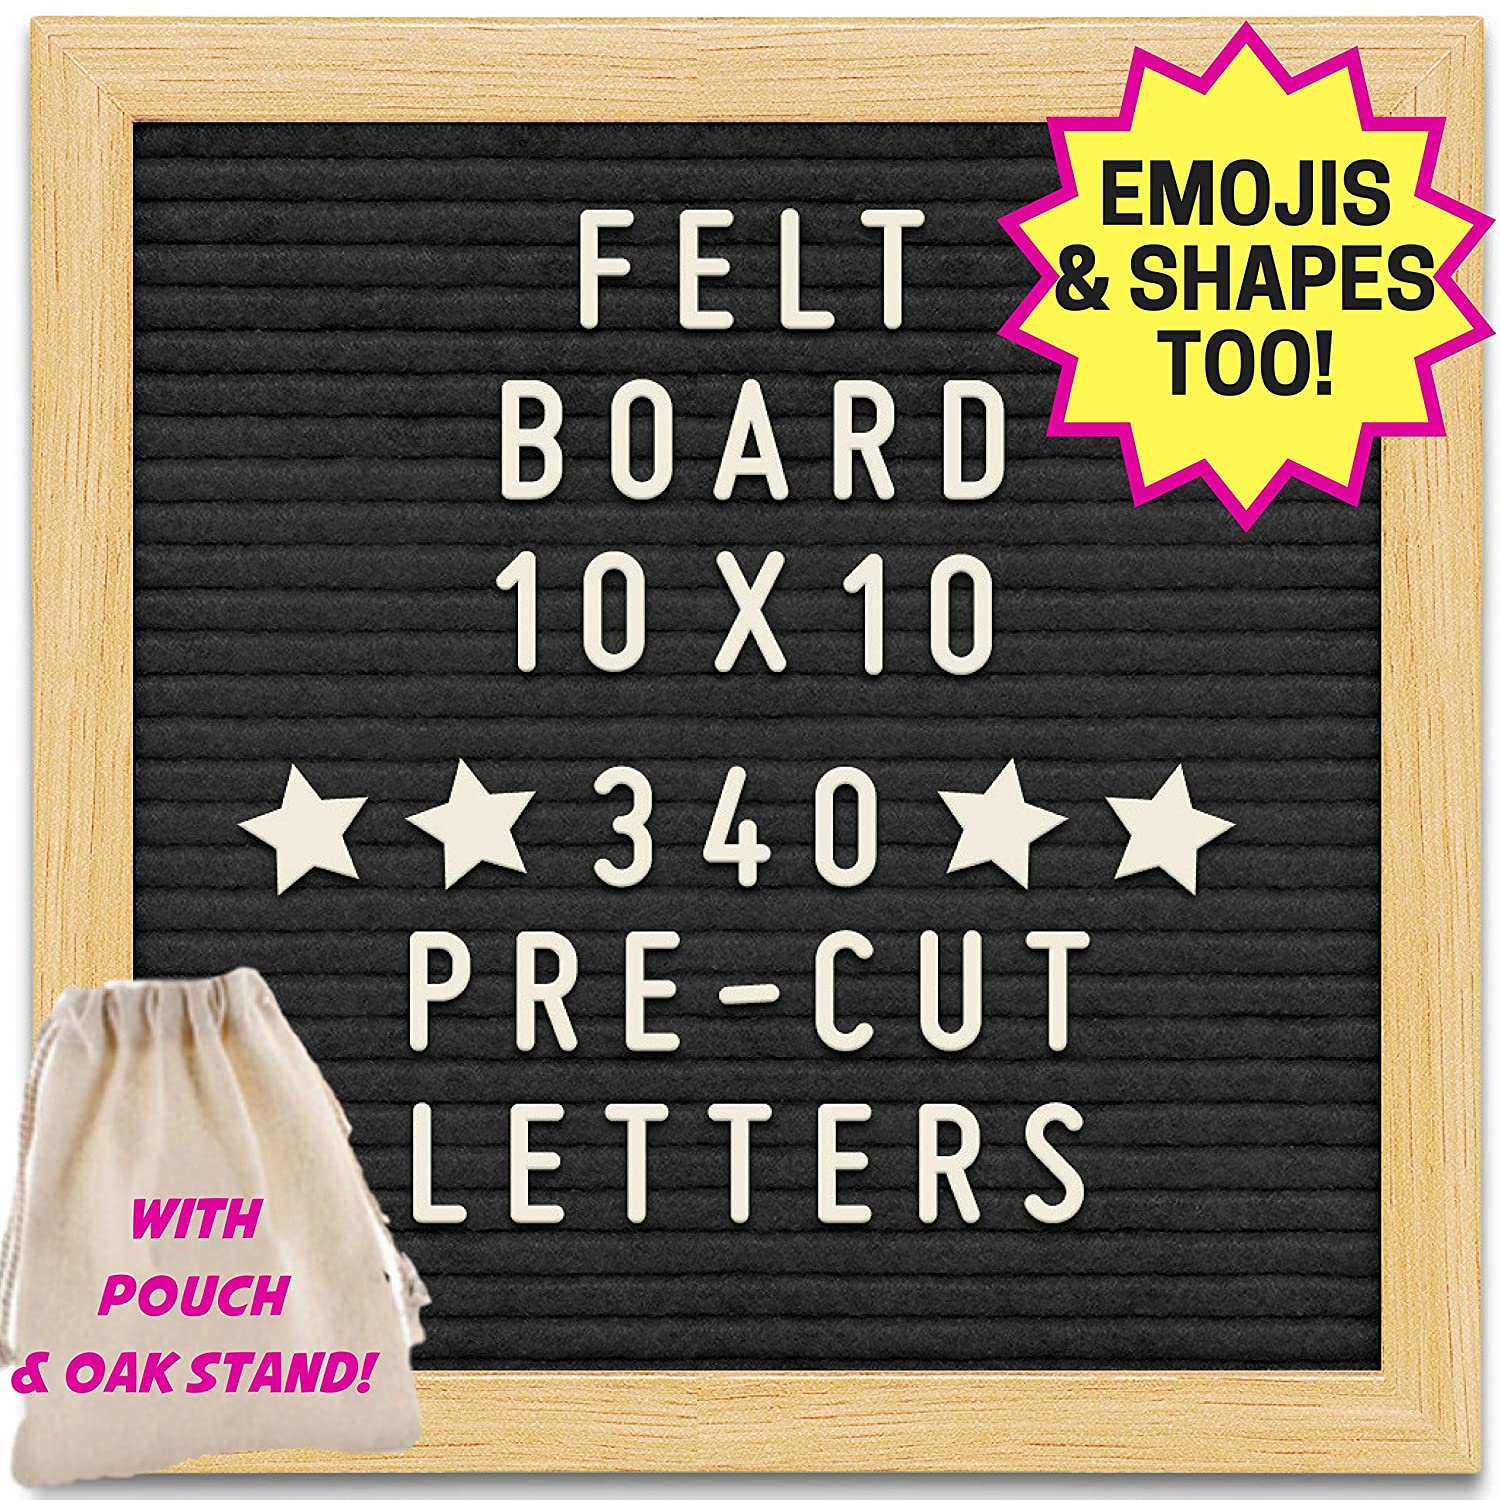 Black Felt Letter Board With 10 X10 Wooden Frame And Stand. Includes 340 Changeable Pre Cut Letters, Numbers & Emojis Separated In Canvas Bag   Best For Sharing Your Message. by Mommy Marvel